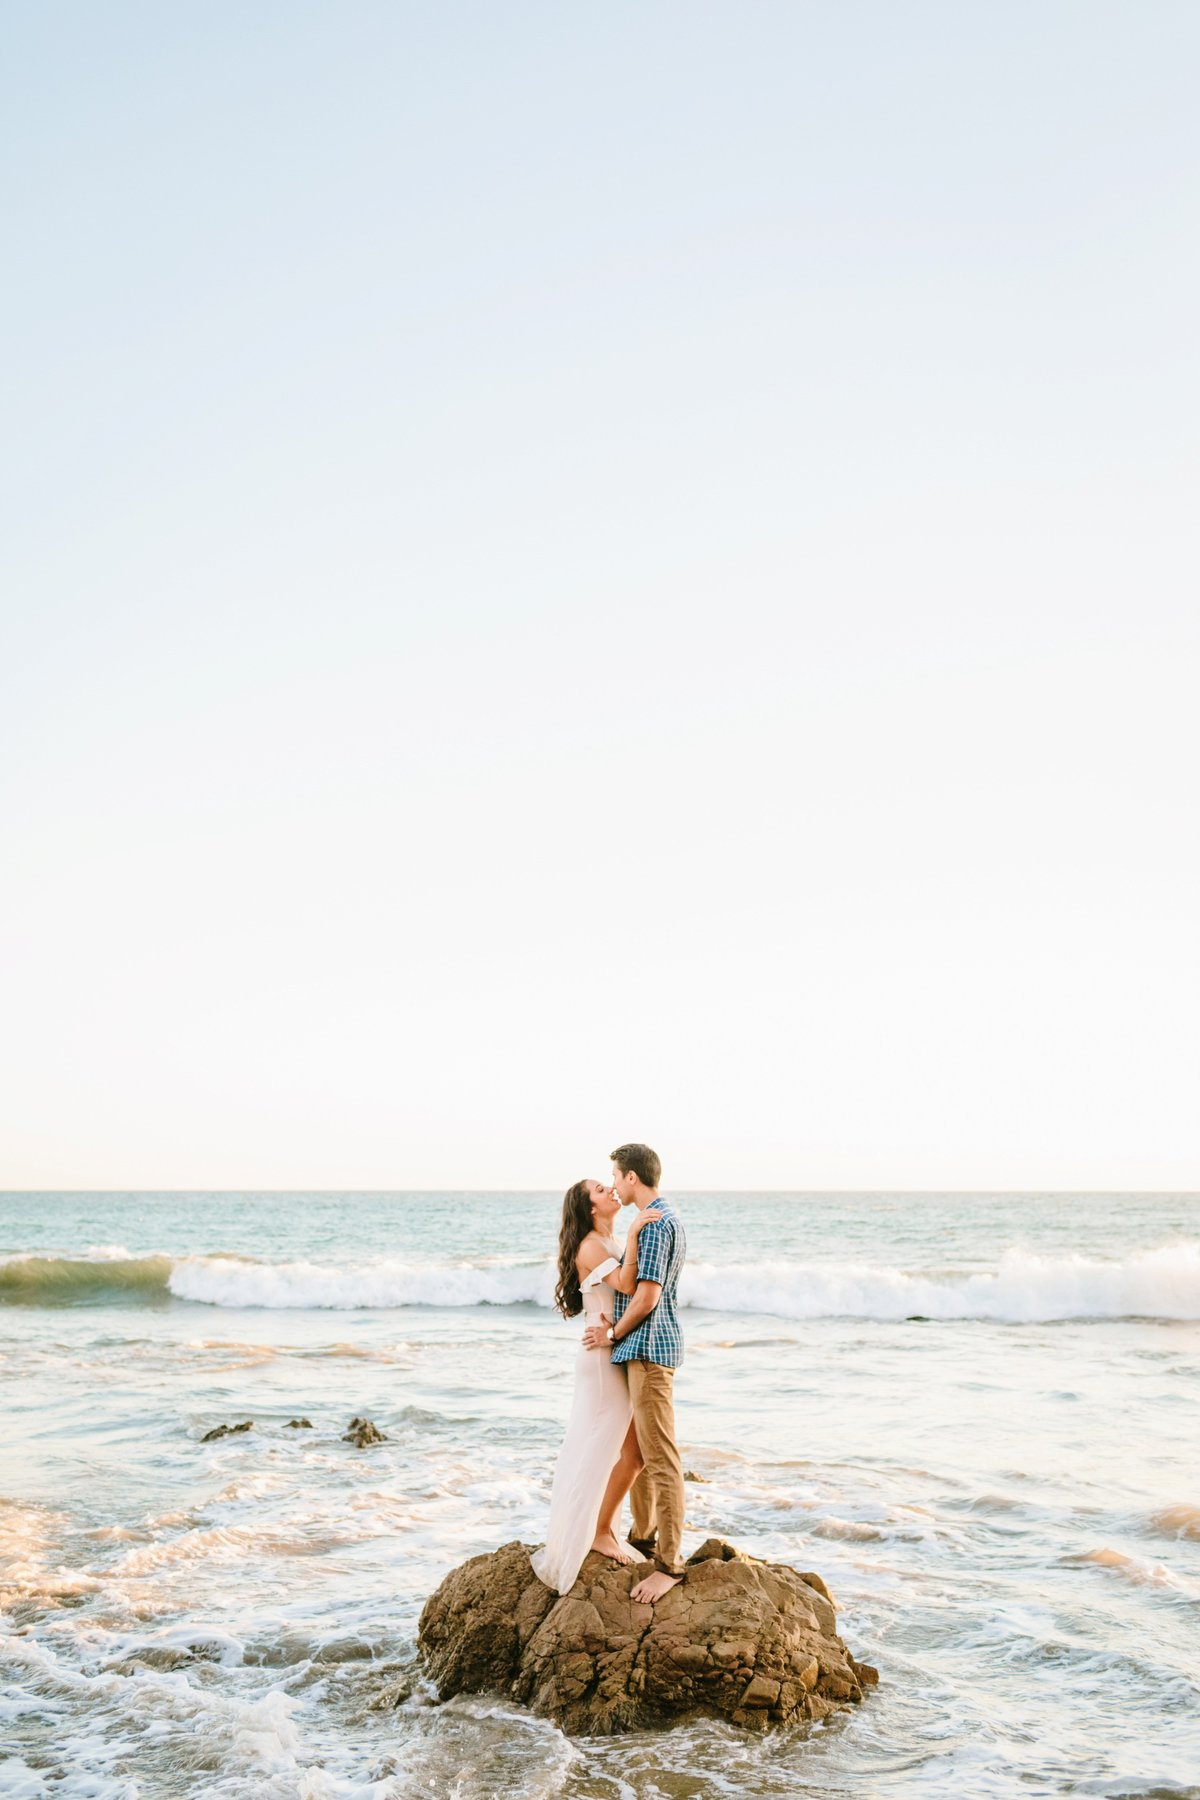 Best California Engagement Photographer-Jodee Debes Photography-144